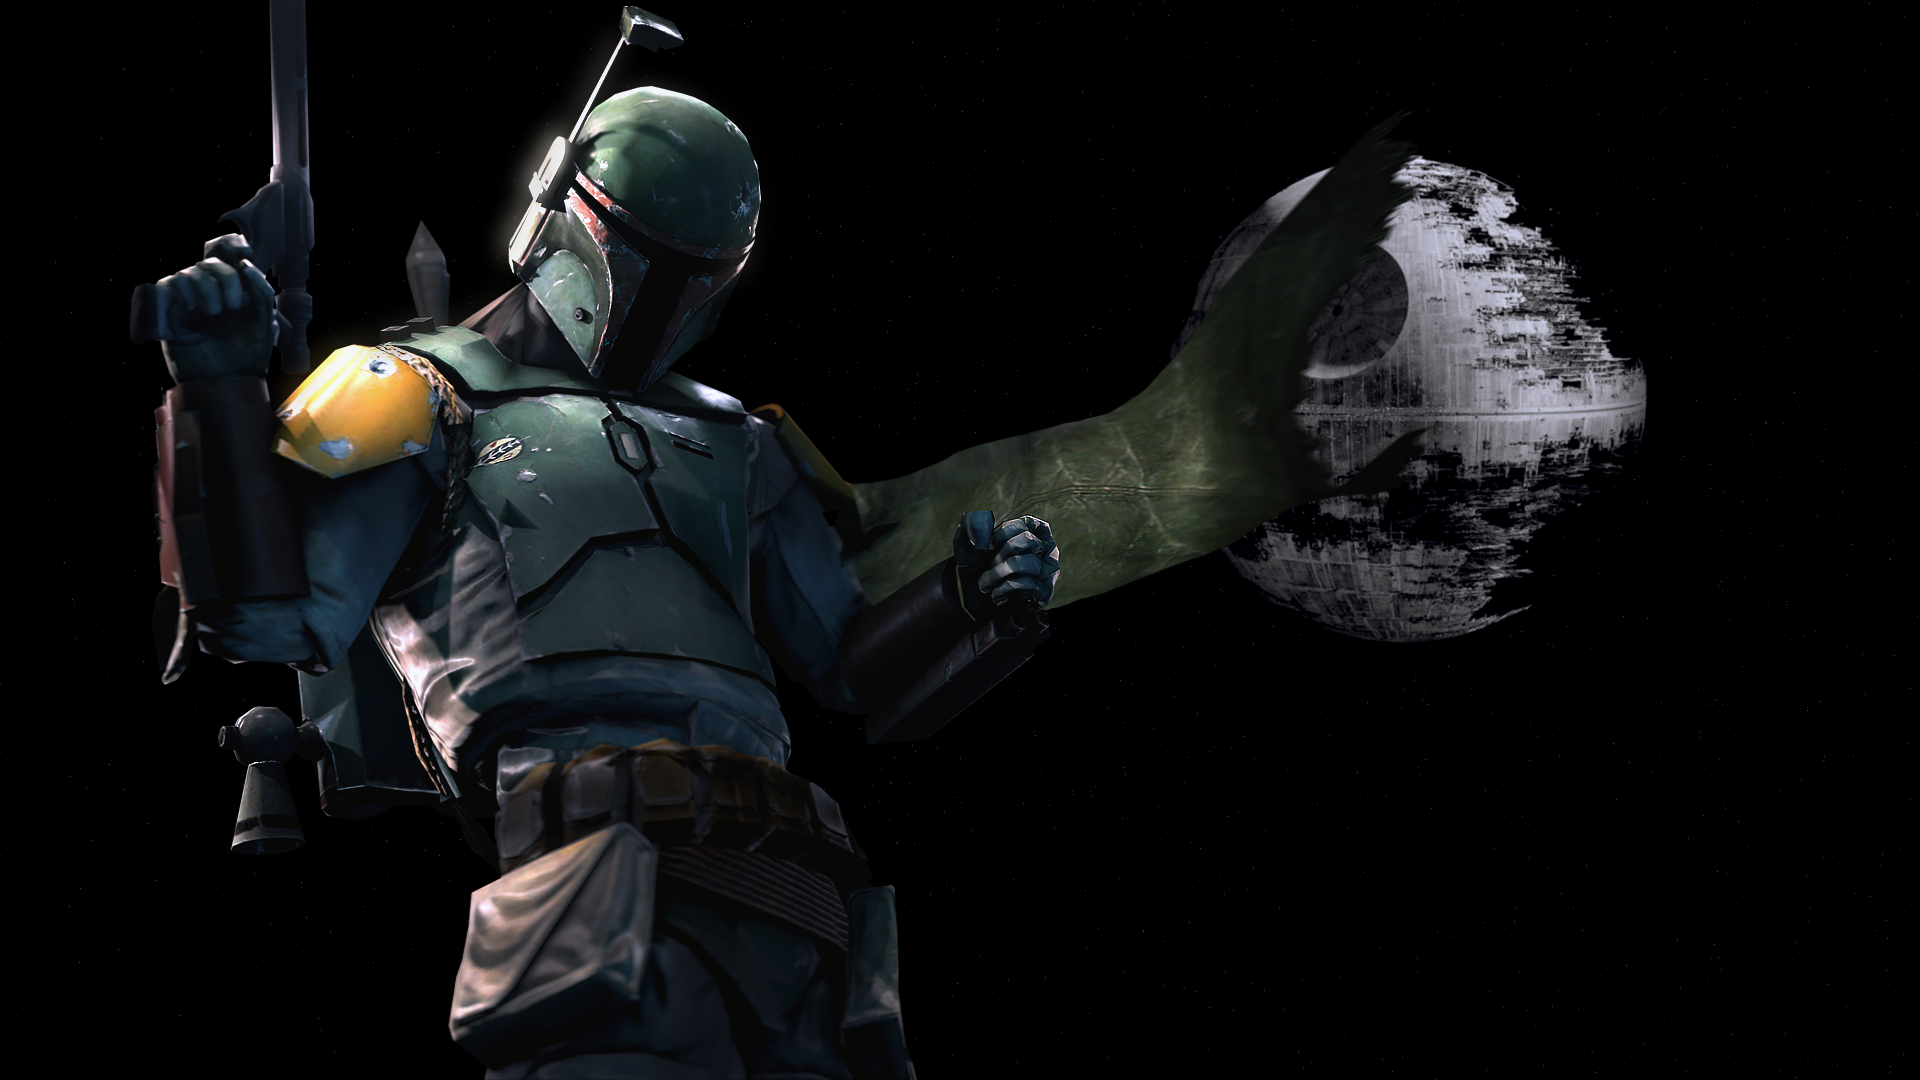 Free Download Tags Boba Fett Wallpaper Hd For Android Star Wars Wallpapers 1920x1080 For Your Desktop Mobile Tablet Explore 46 Hd Boba Fett Wallpaper Boba Fett Wallpapers Jango Fett